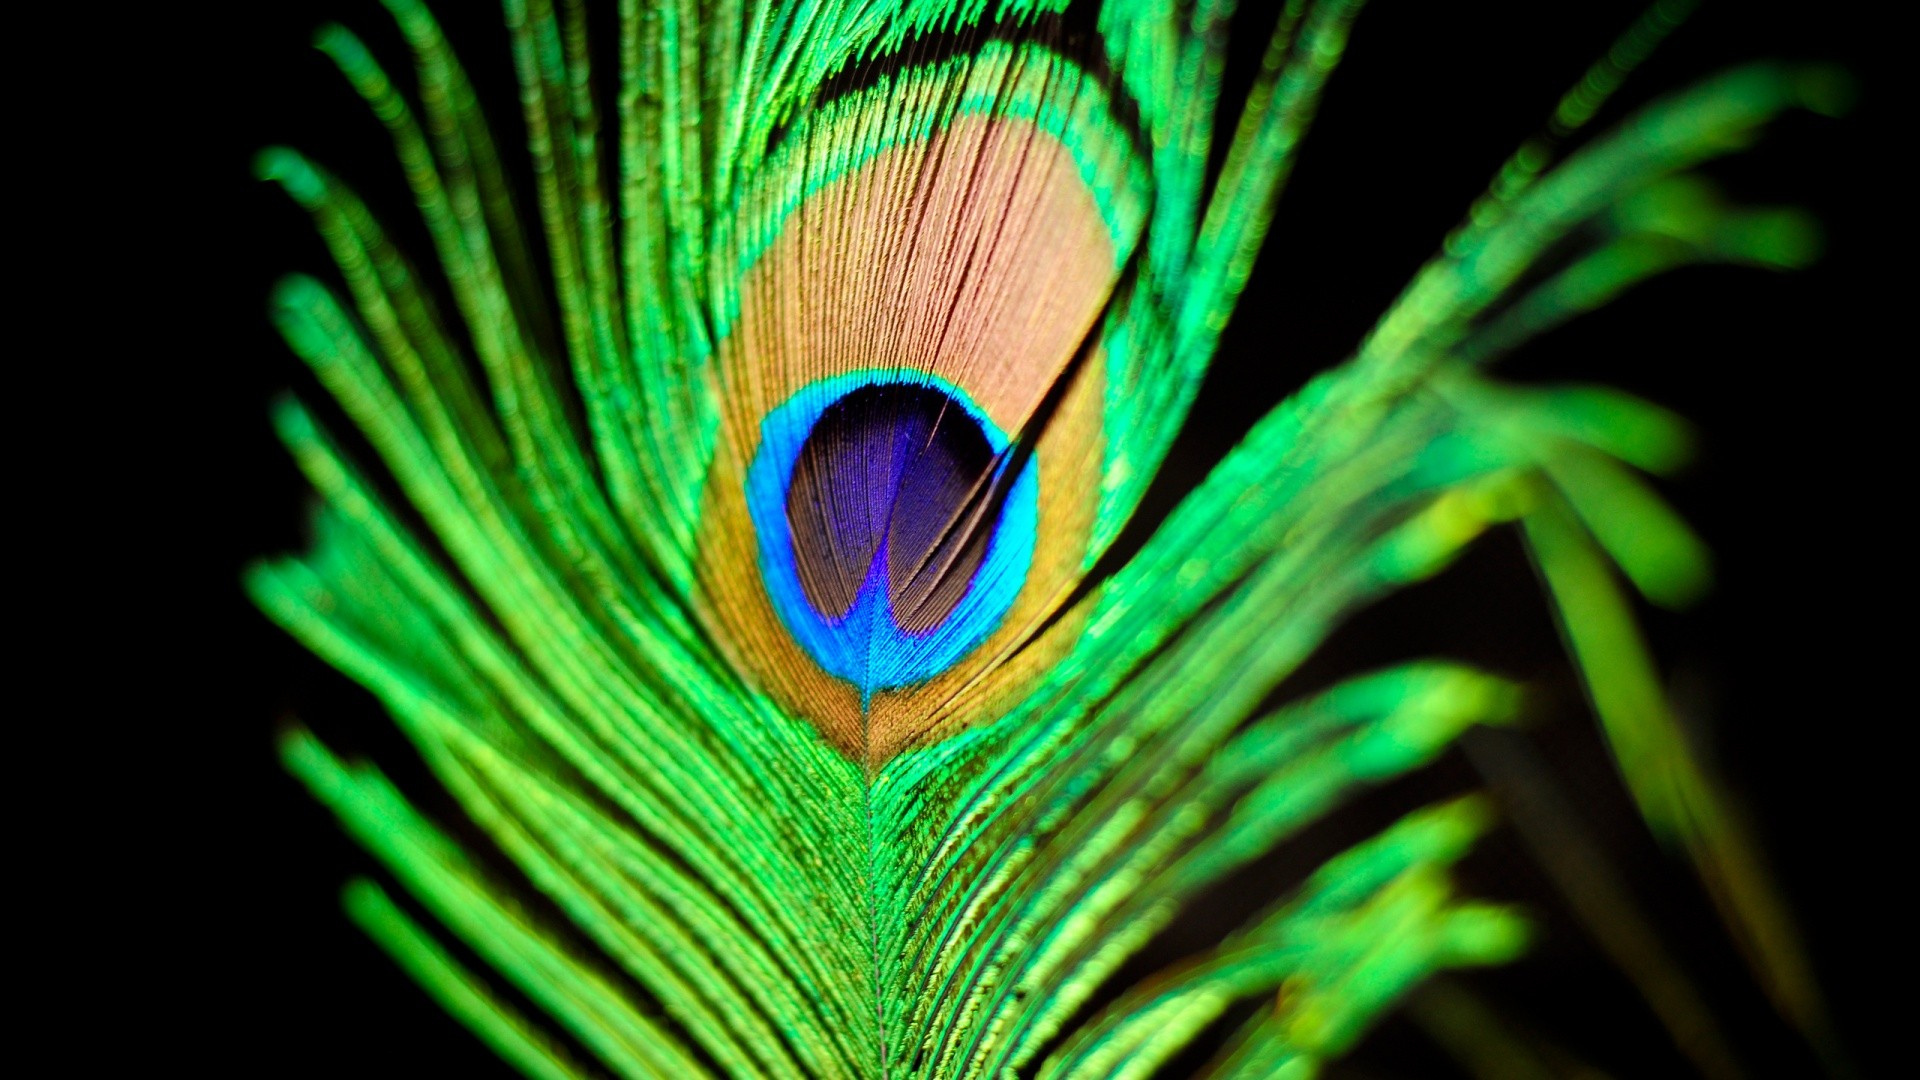 Peacock feather wallpaper   778127 1920x1080